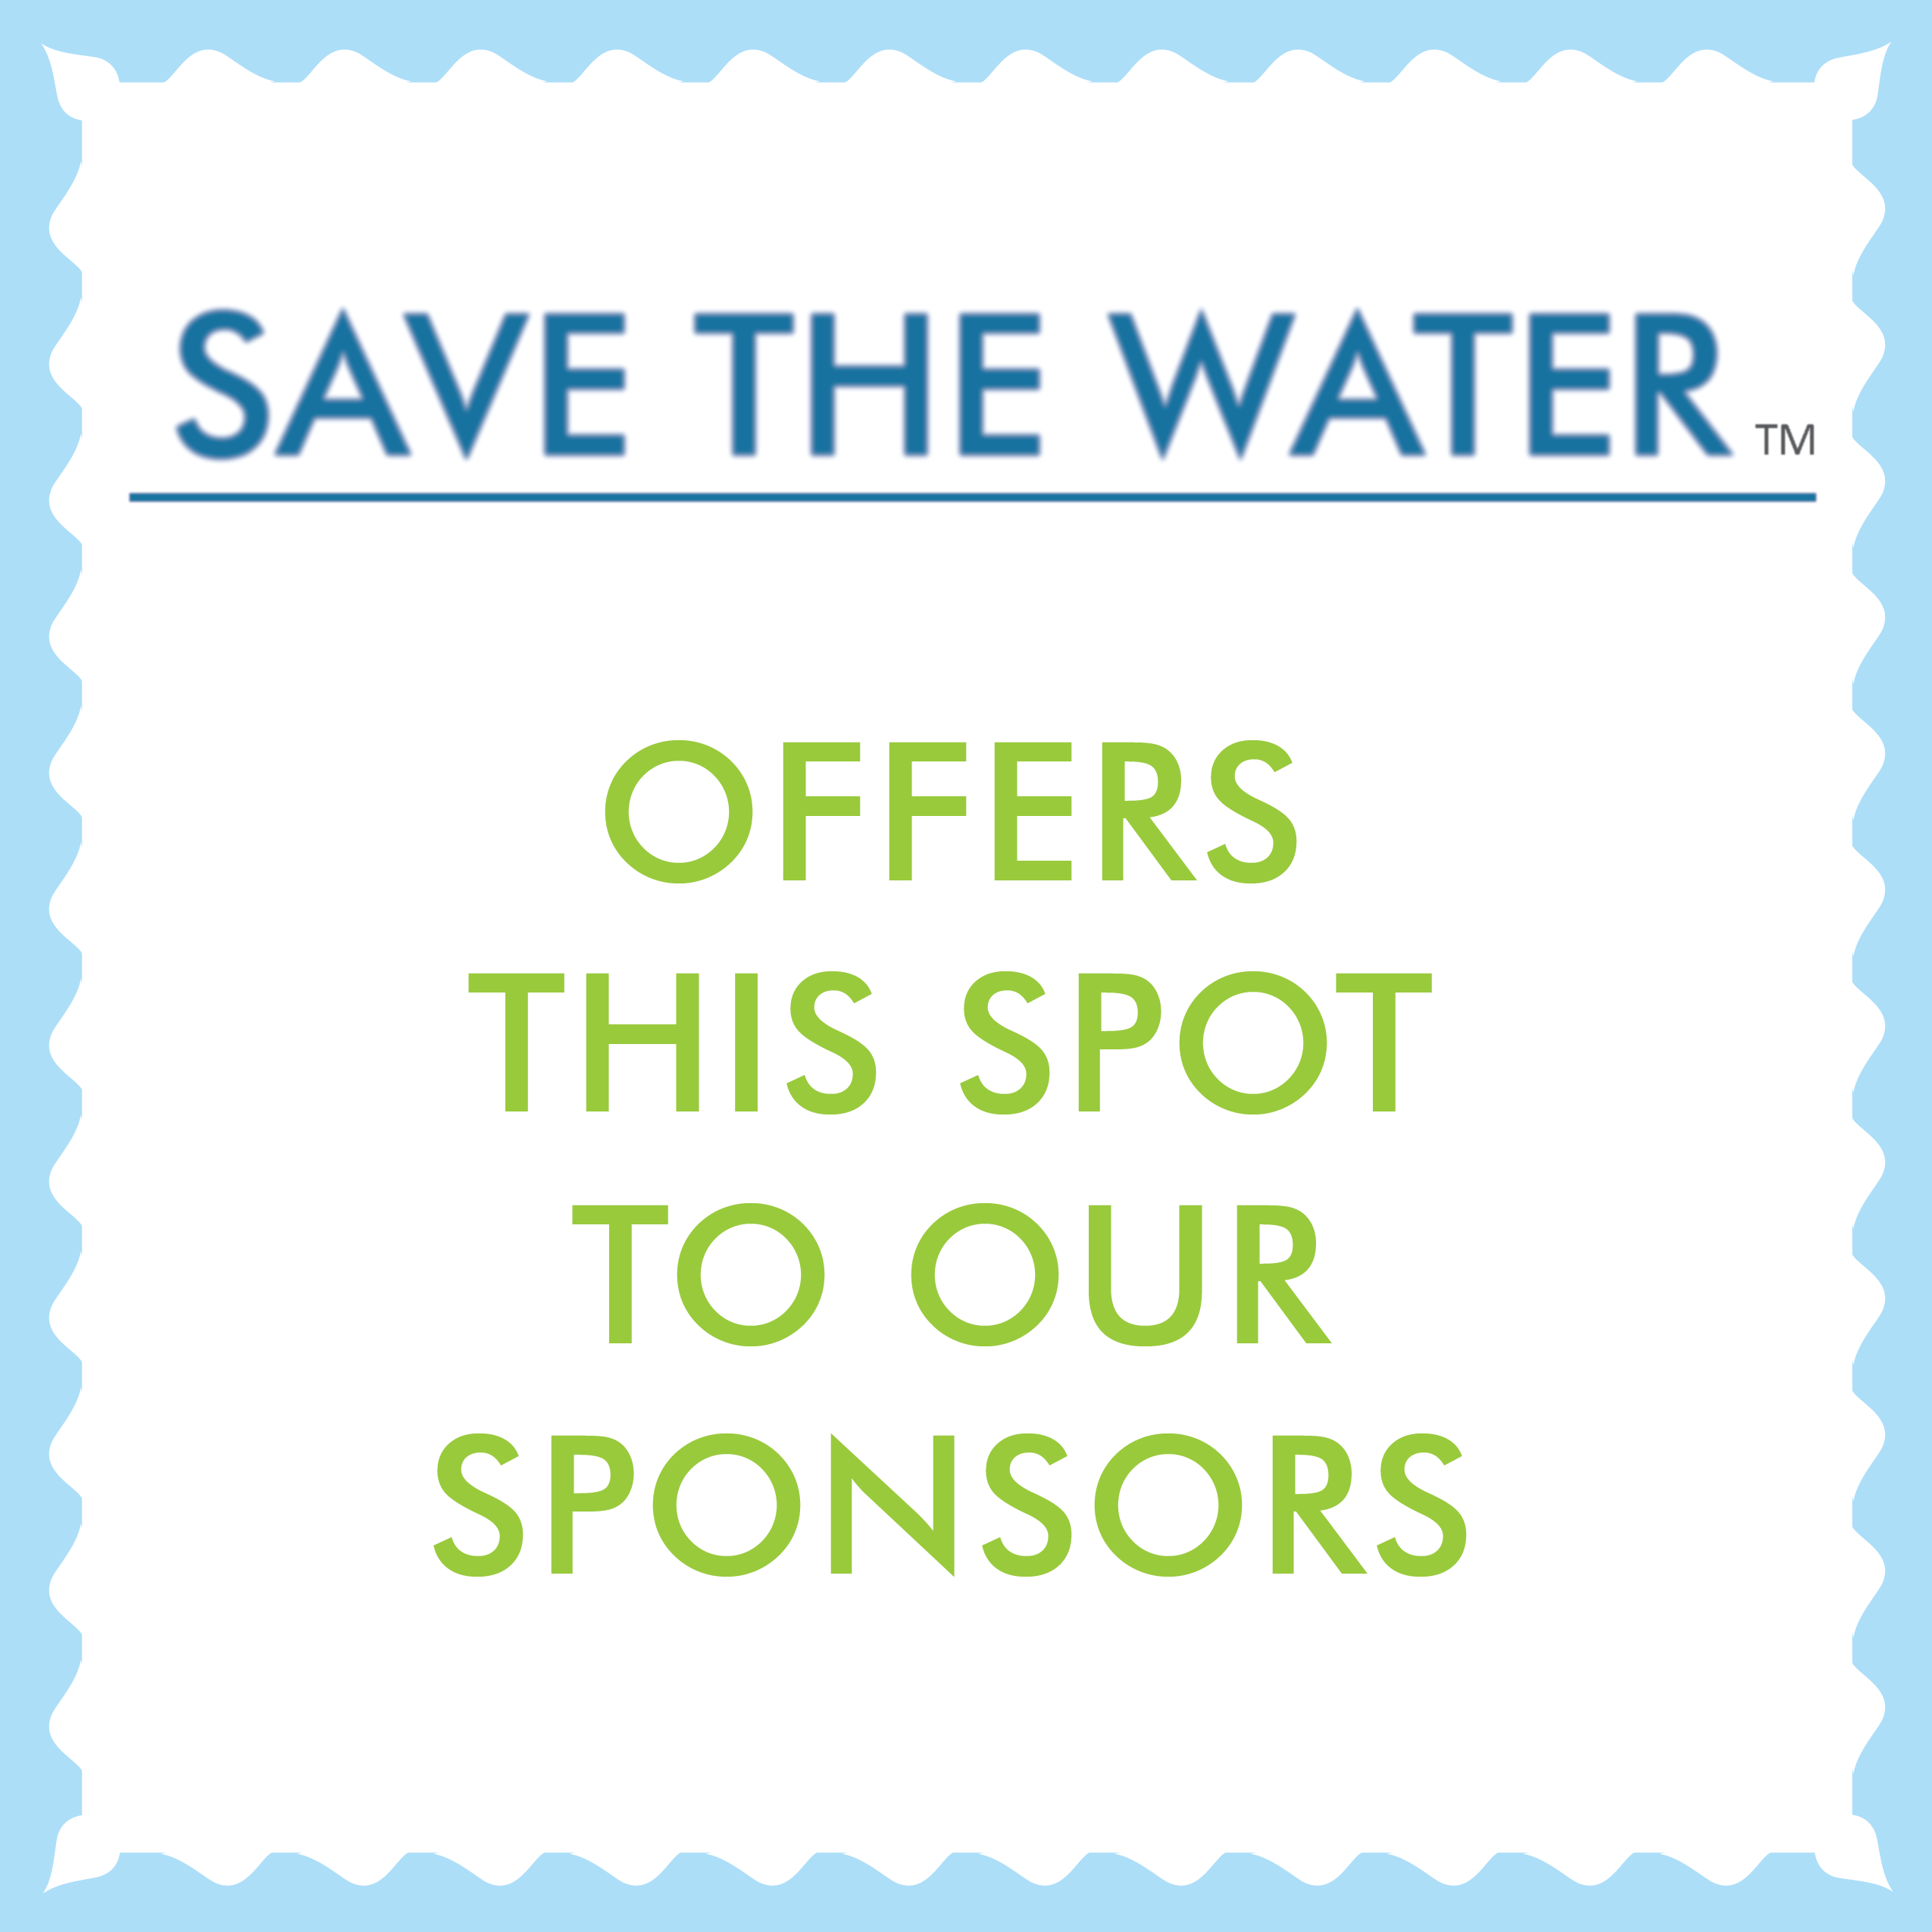 Save The Water offers this spot to our sponsors